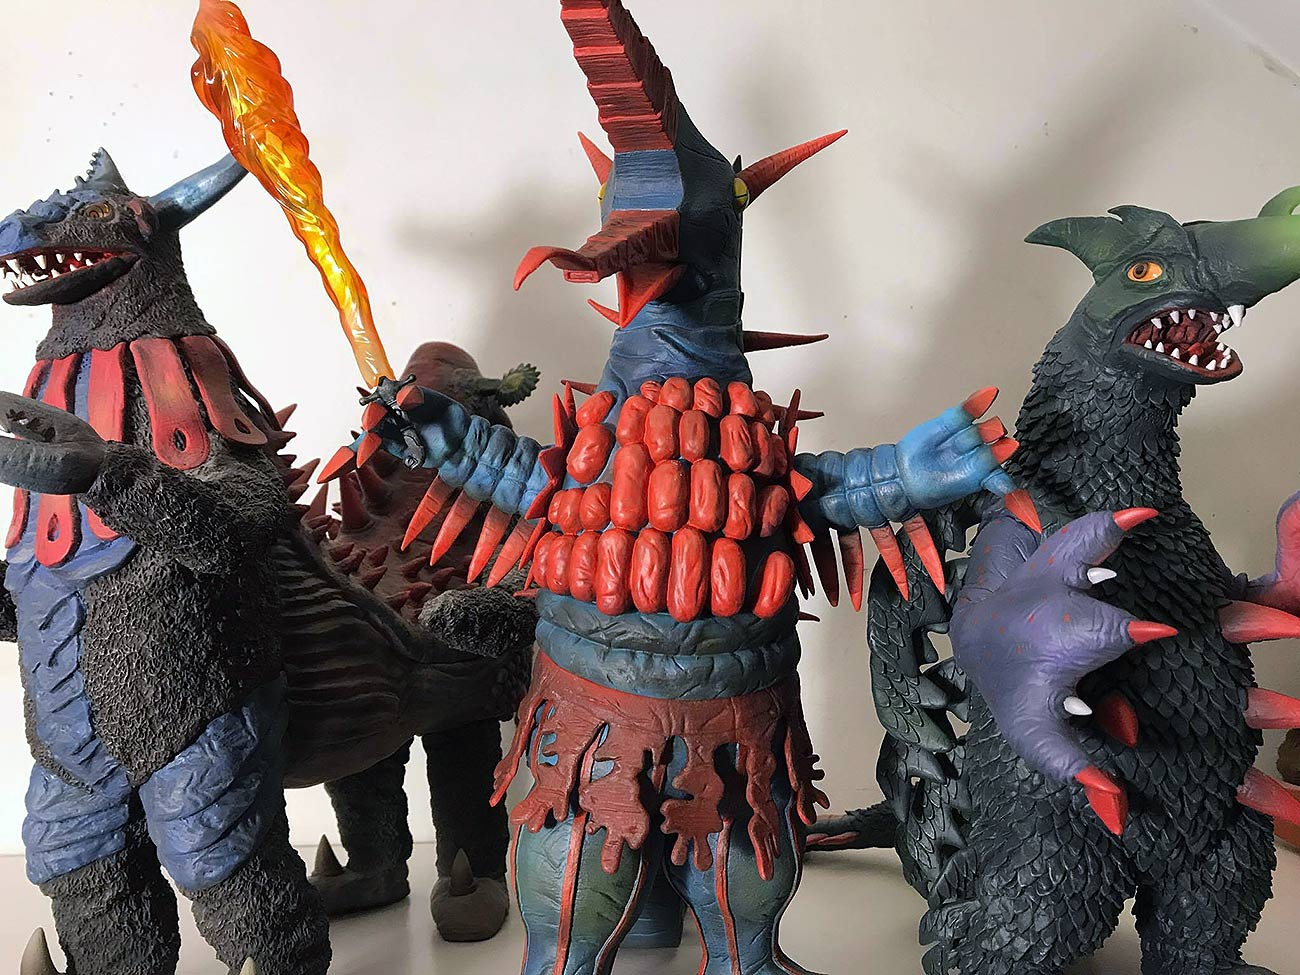 X-Plus Firemons vinyl figure among other Ultra kaiju vinyls by X-Plus. Photo by Vince Elliot.